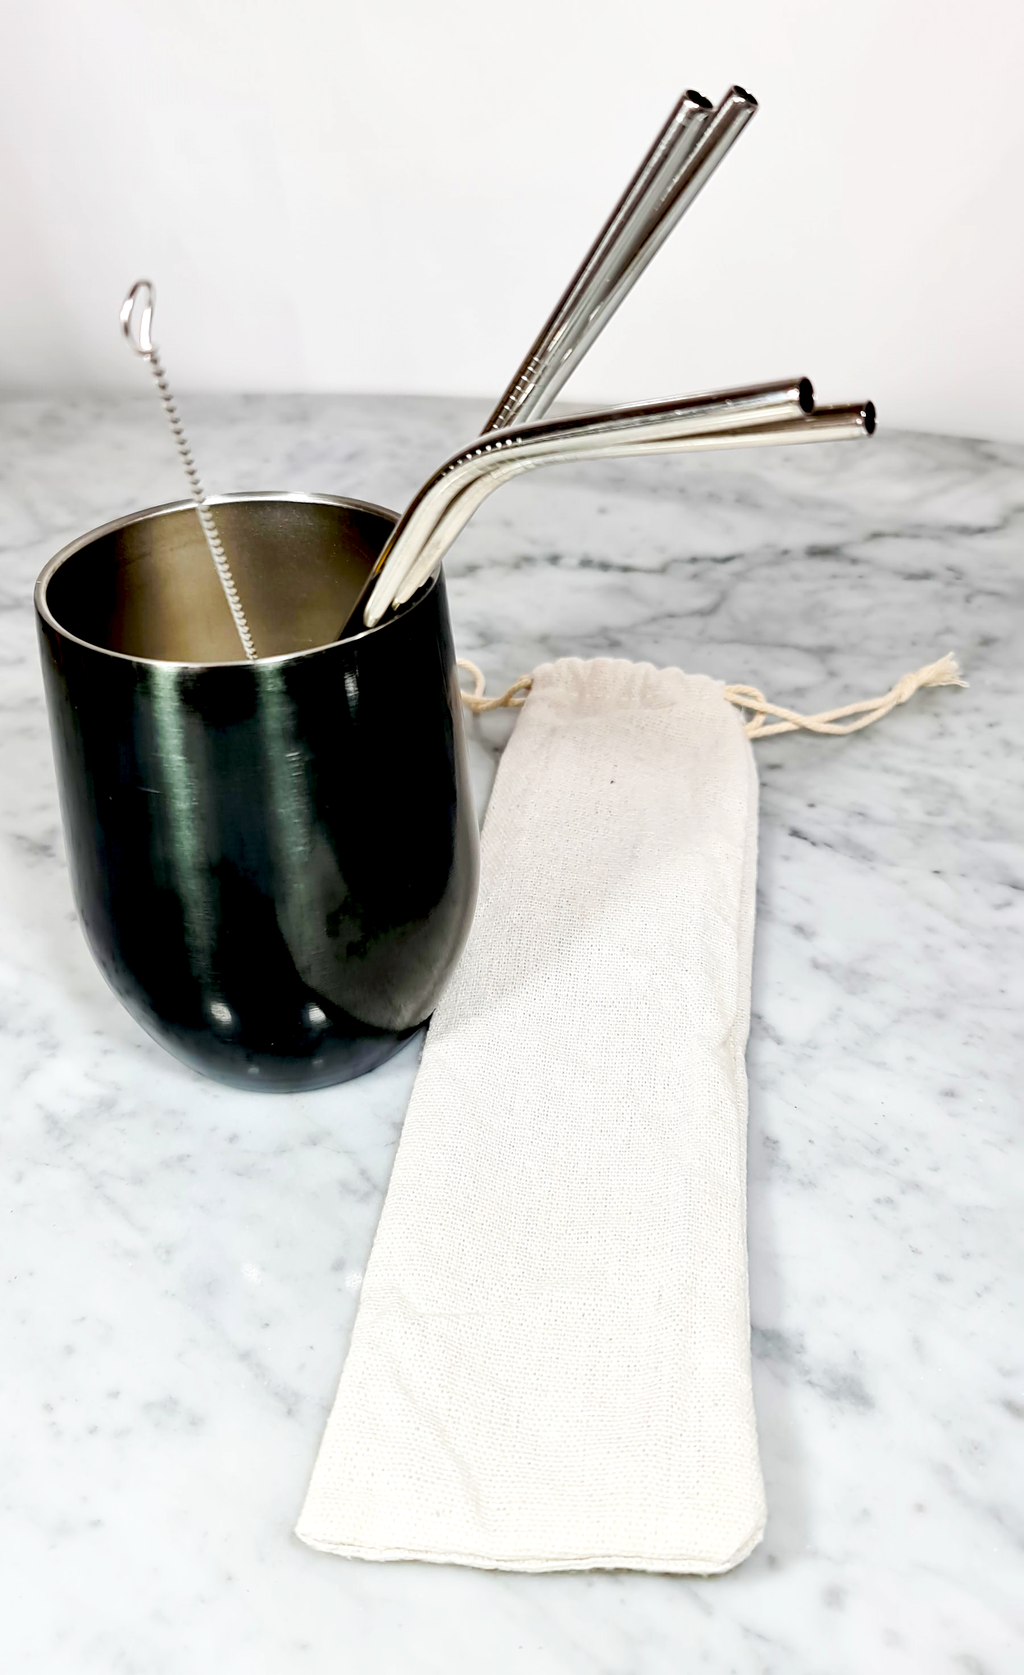 Stainless Steel Straws, Reusable Metal Drinking Straws and accesories, make your own set